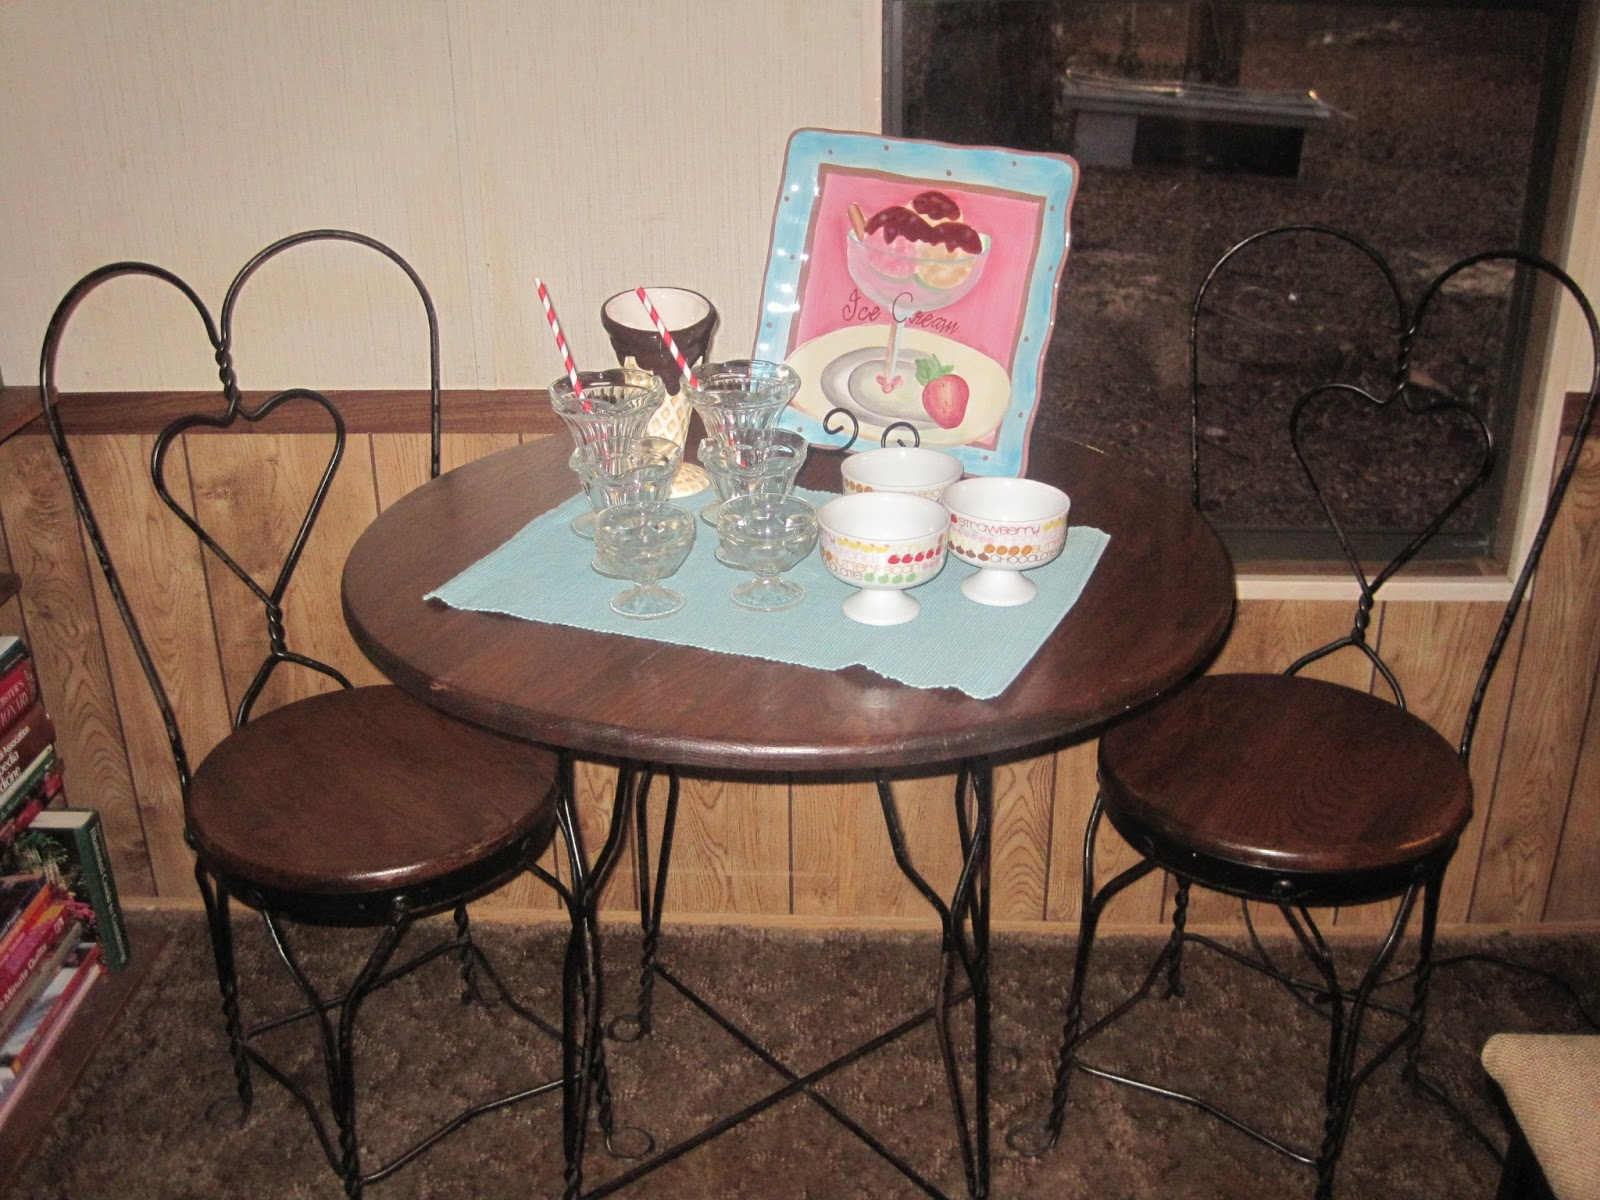 Ice Cream Table And Chairs Dining Chair Covers Amazon Prime Life On Willie Mae Lane